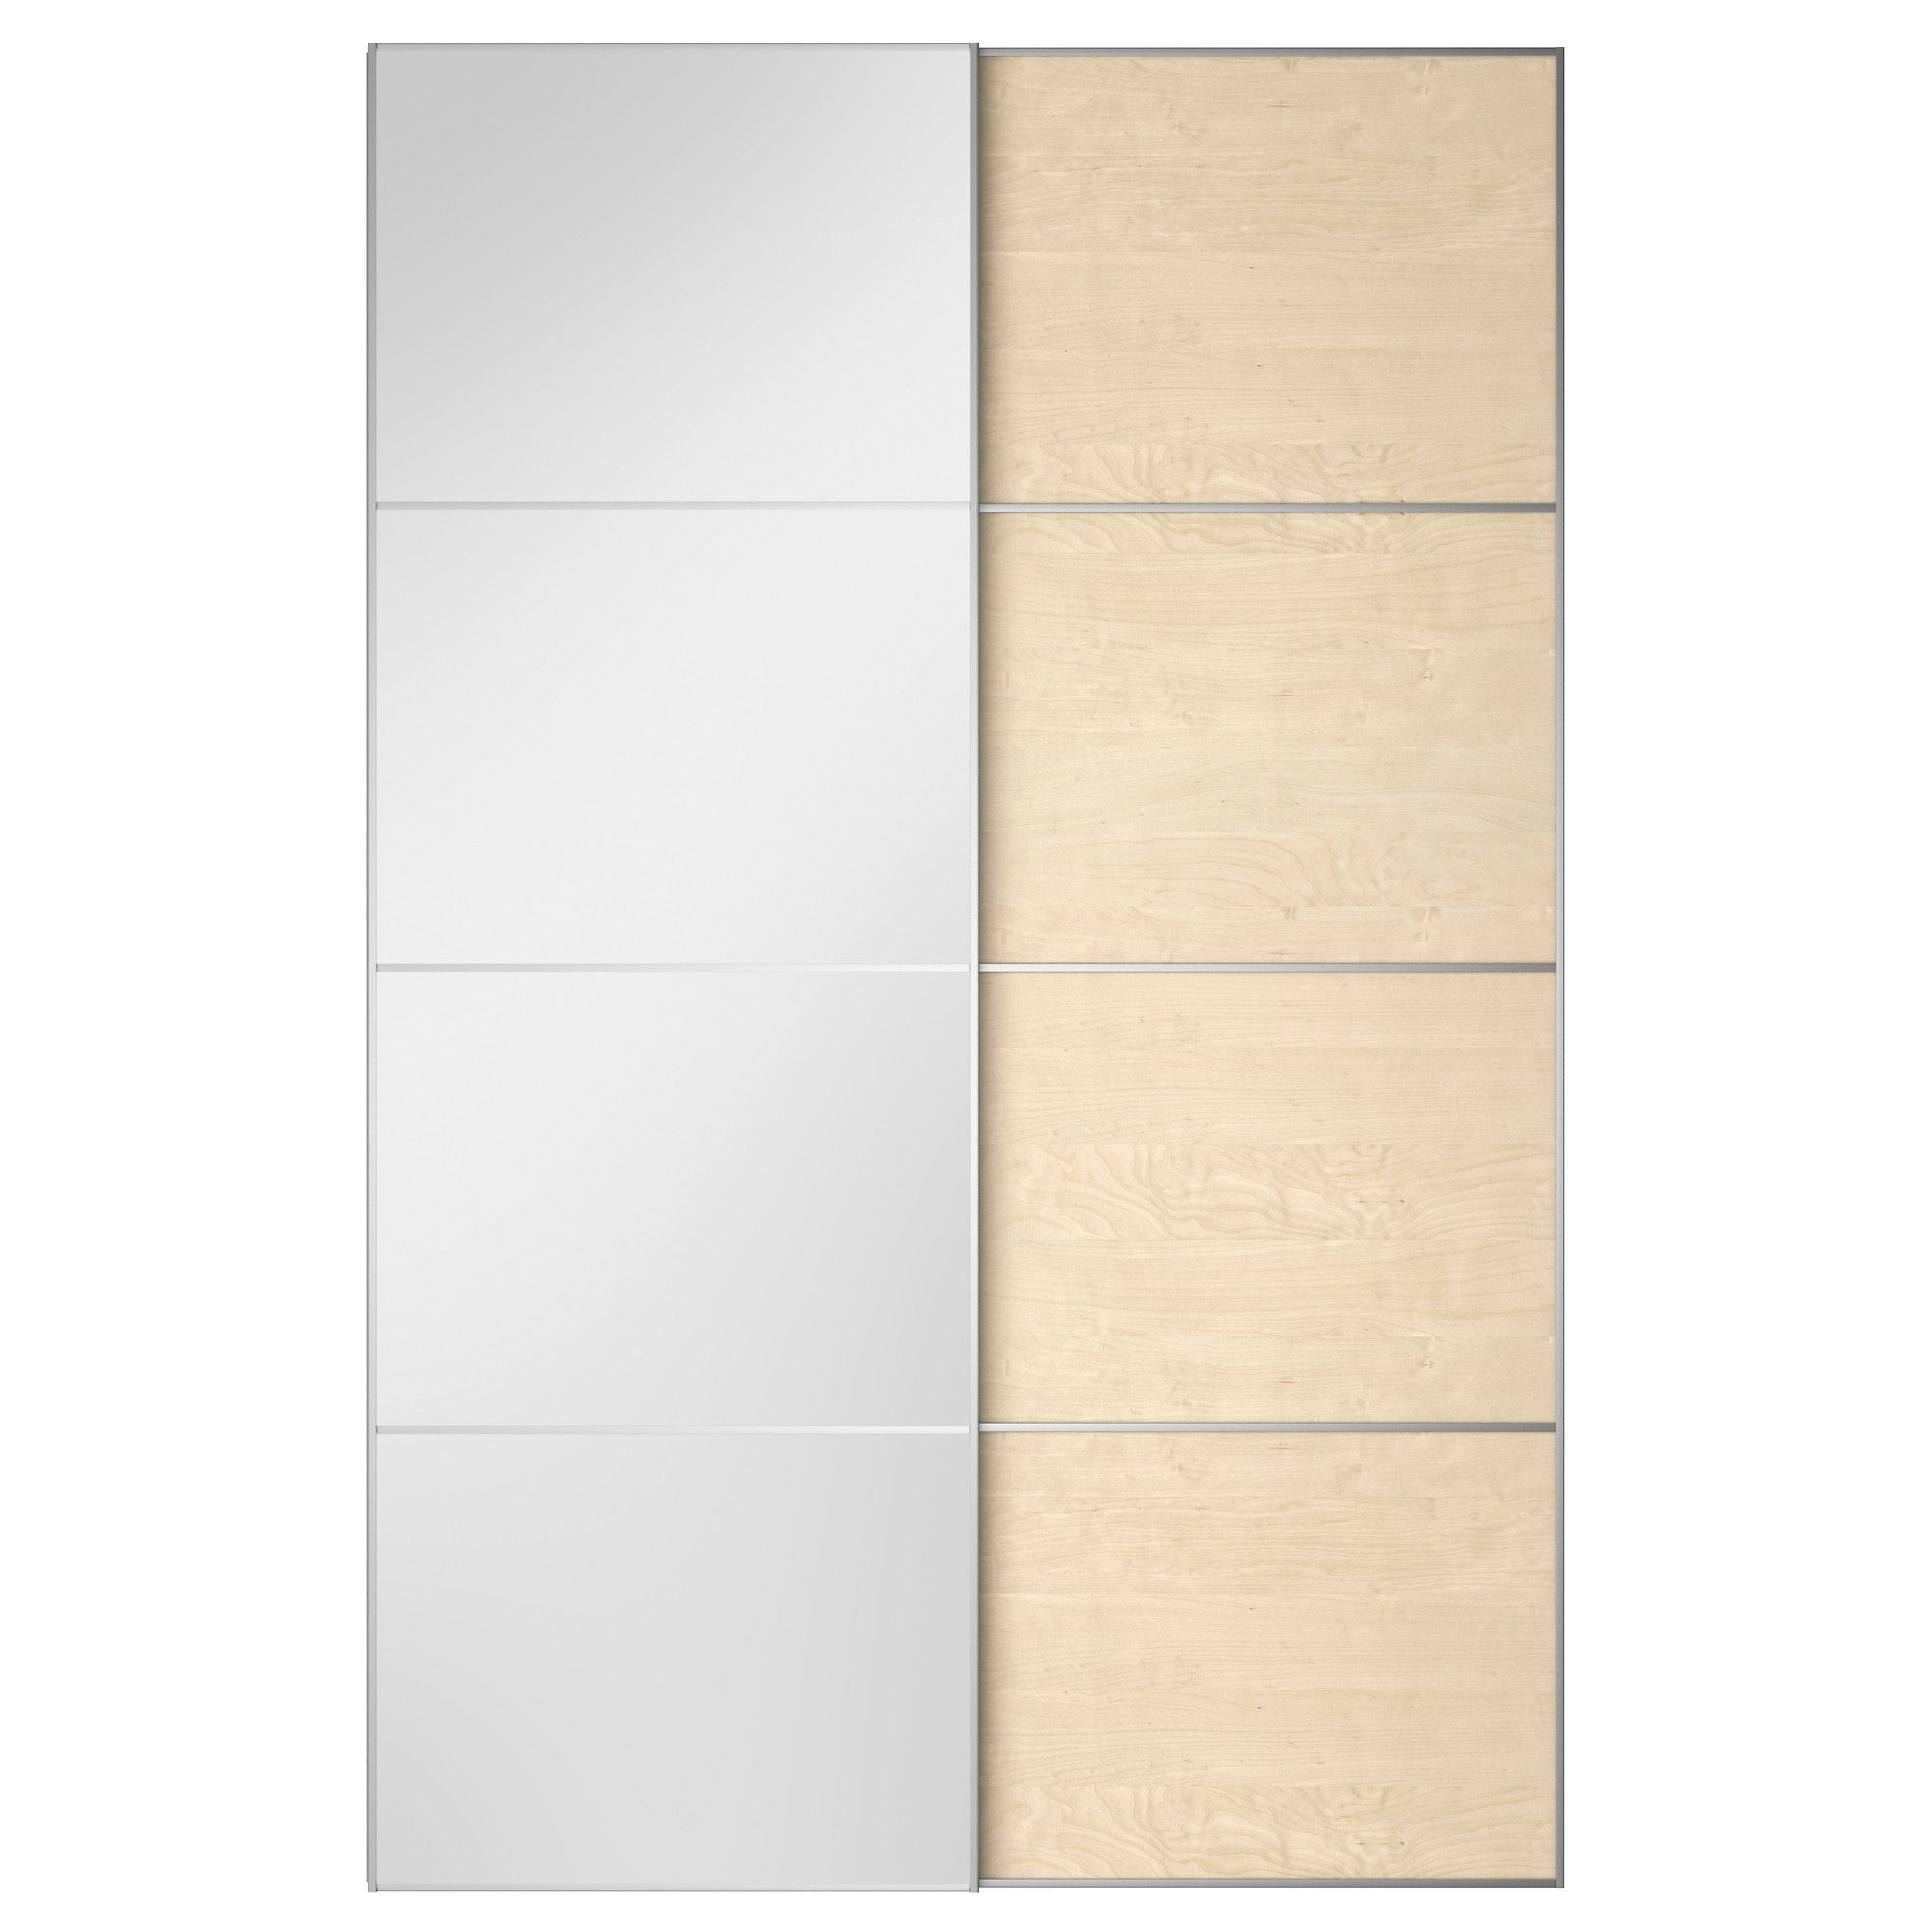 IKEA AULI/ILSENG Pair Of Sliding Doors Mirror Glass/white Stained Oak  Veneer Cm 10 Year Guarantee.